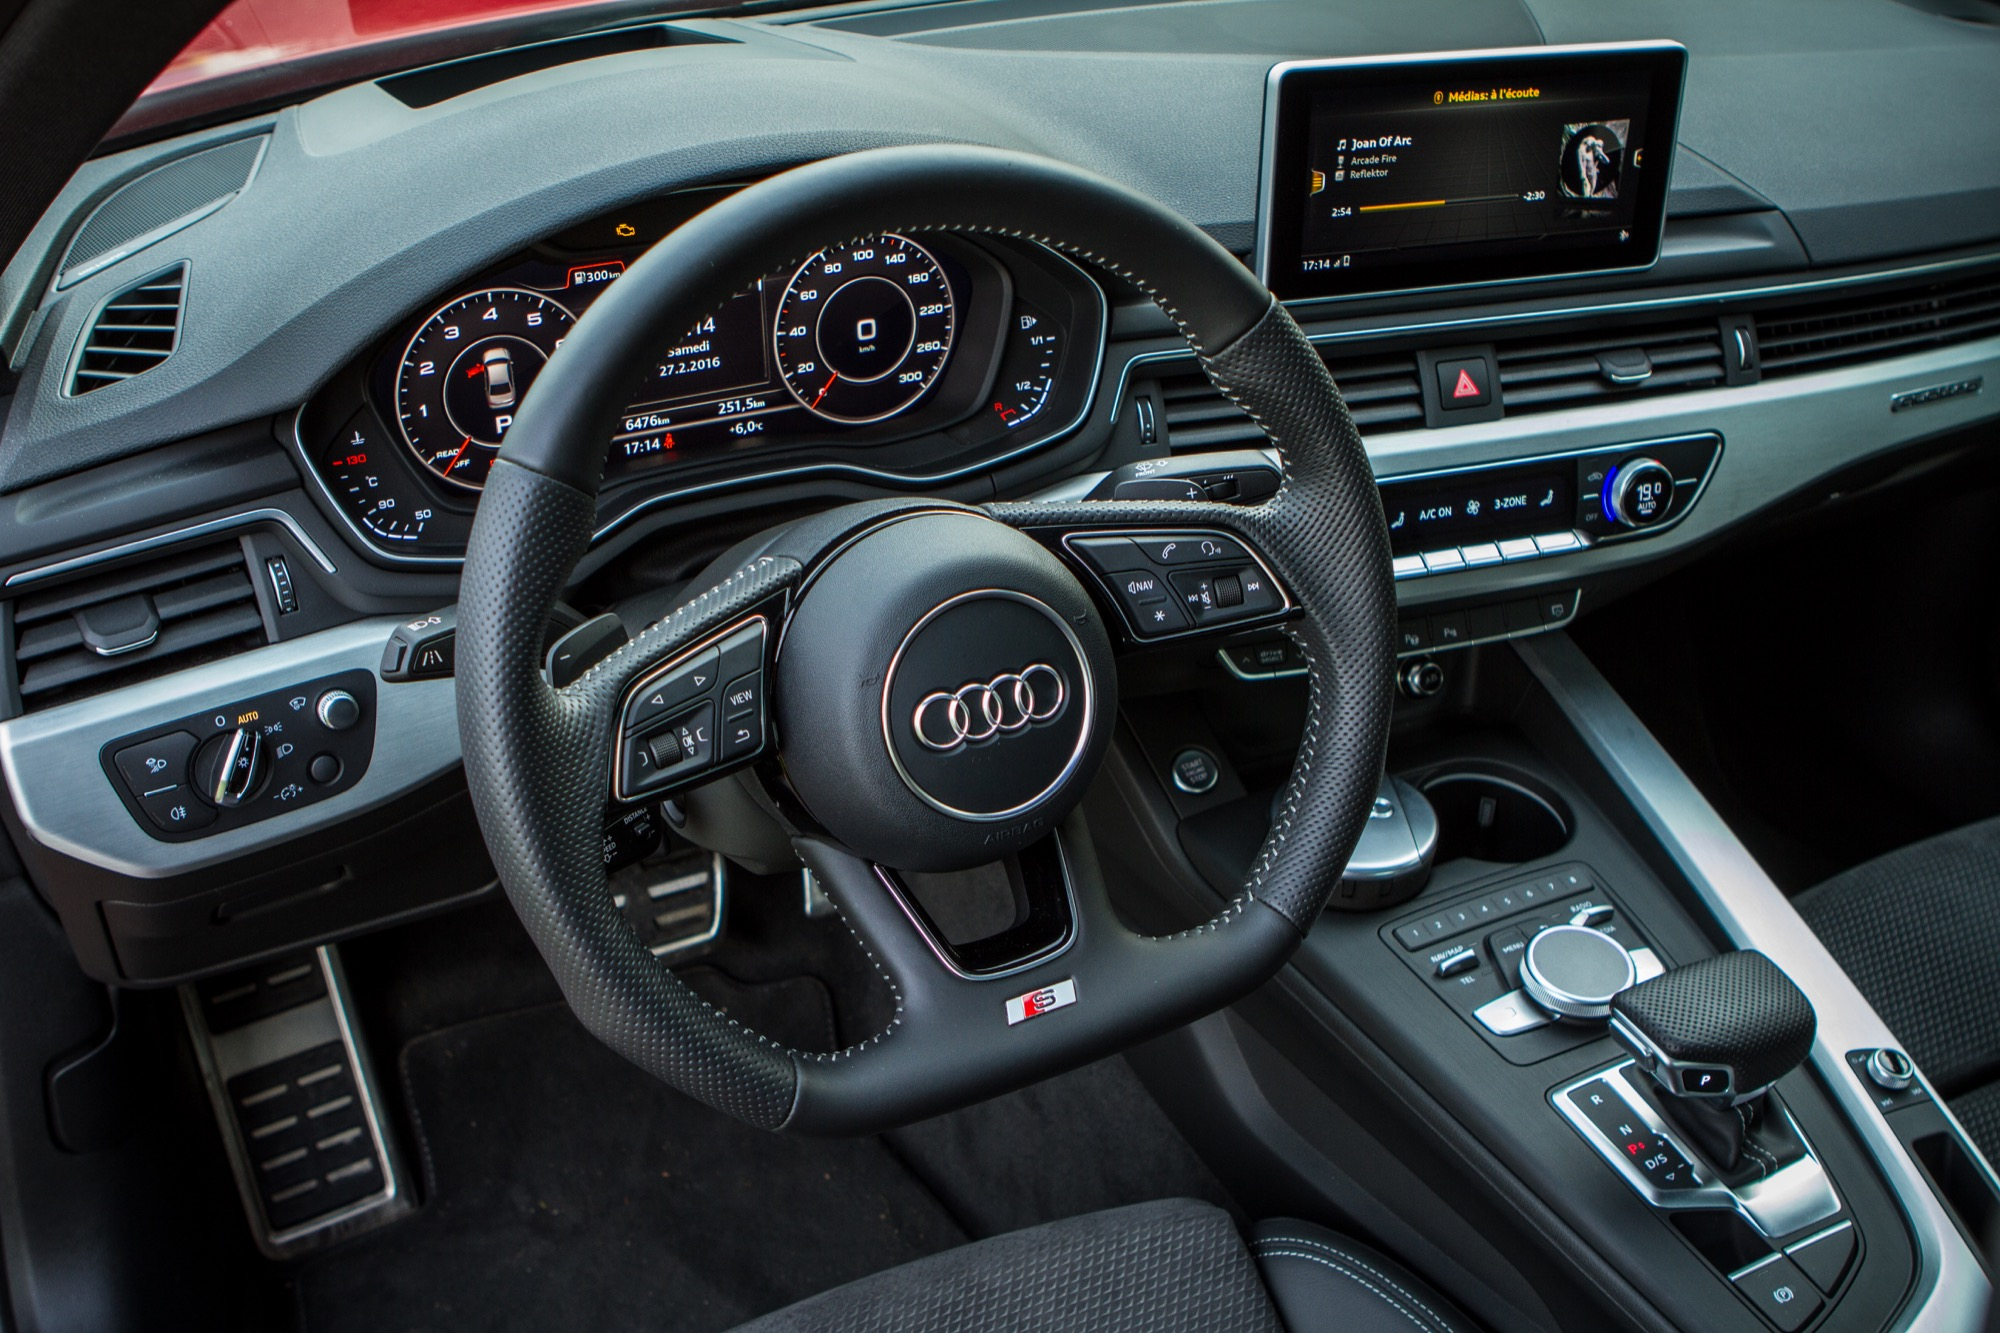 Essai audi a4 2016 s line interieur 94 le blog de viinz for Interieur audi a4